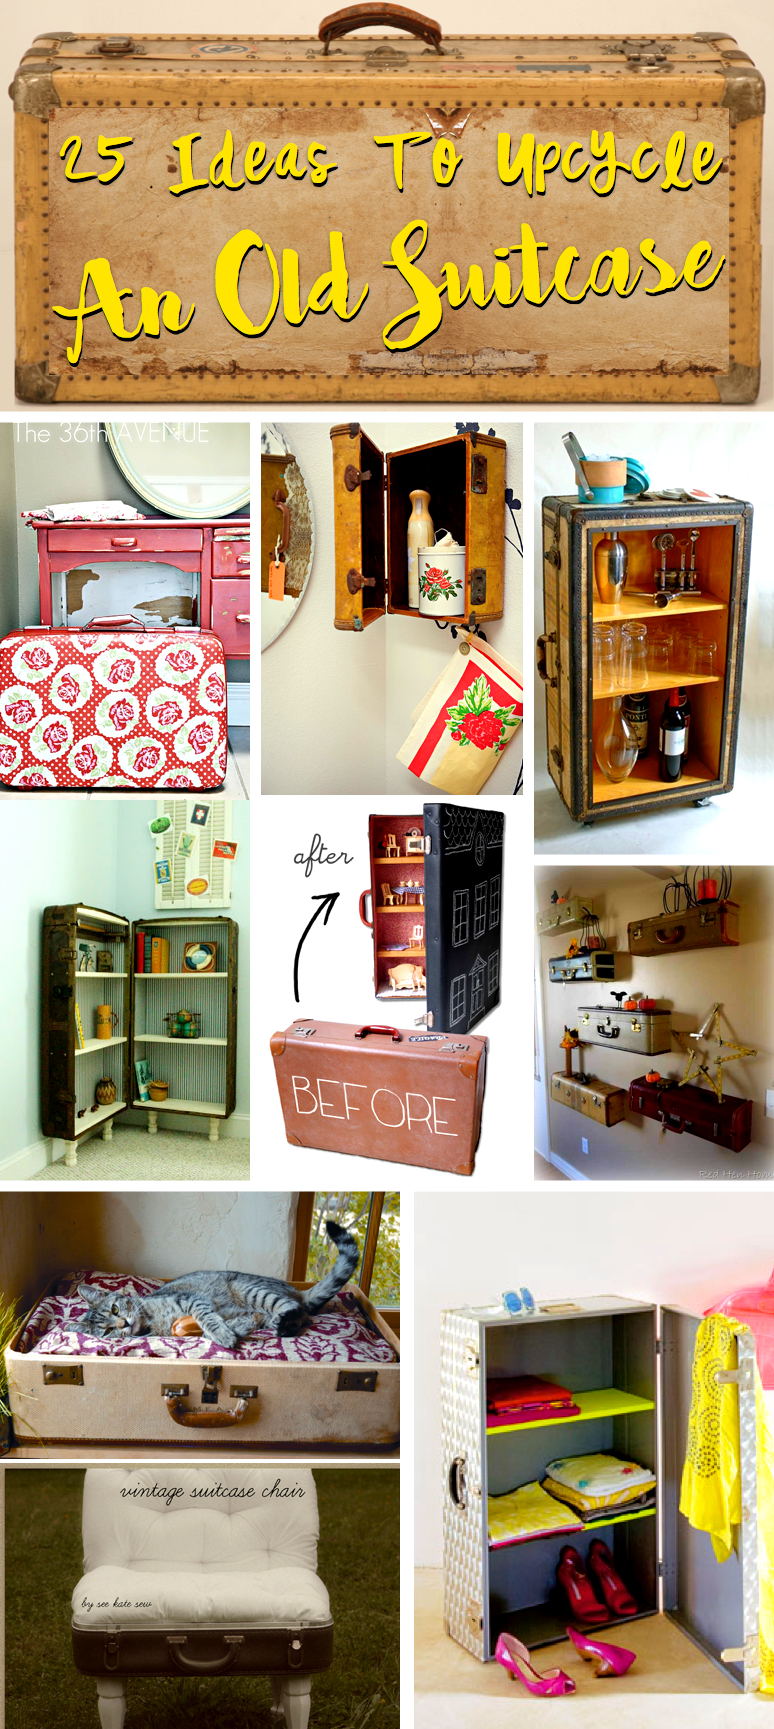 diy garage makeover ideas - 25 Incredible Ideas To Upcycle An Old Suitcase Almost